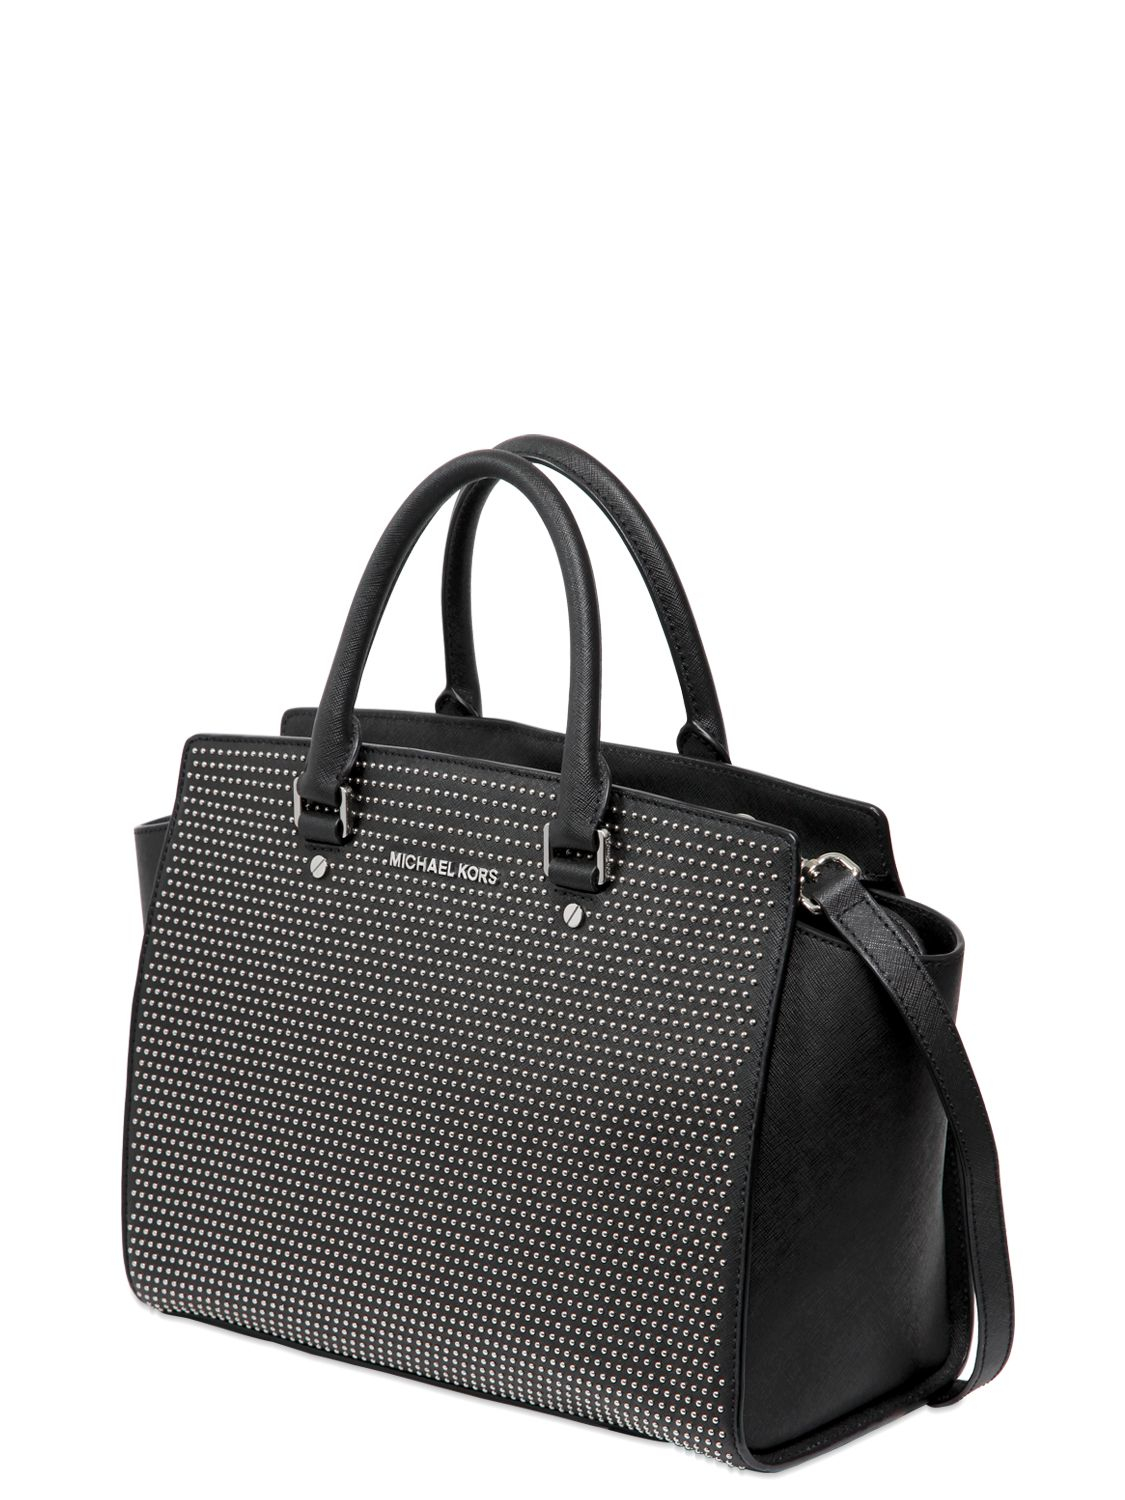 82f5a6319a Gallery. Previously sold at: LUISA VIA ROMA · Women's Michael By Michael  Kors Selma